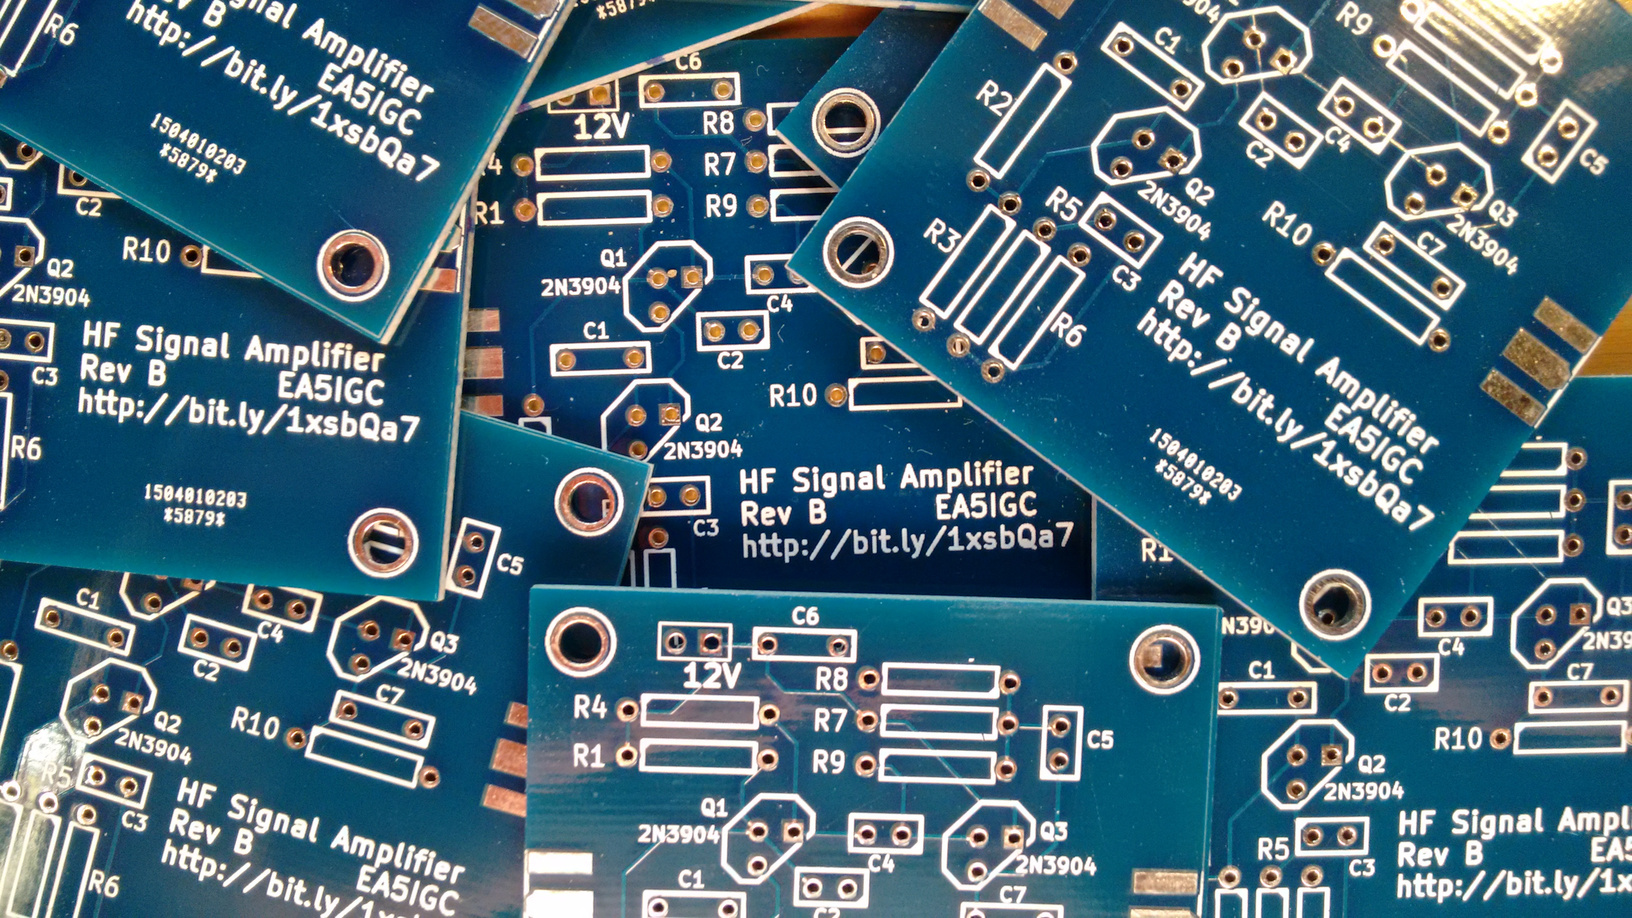 A Signal Amplifier Module For Hf Amplier Circuit Of The Radio Frequency Cascode Rf Img 20150525 192622307resized